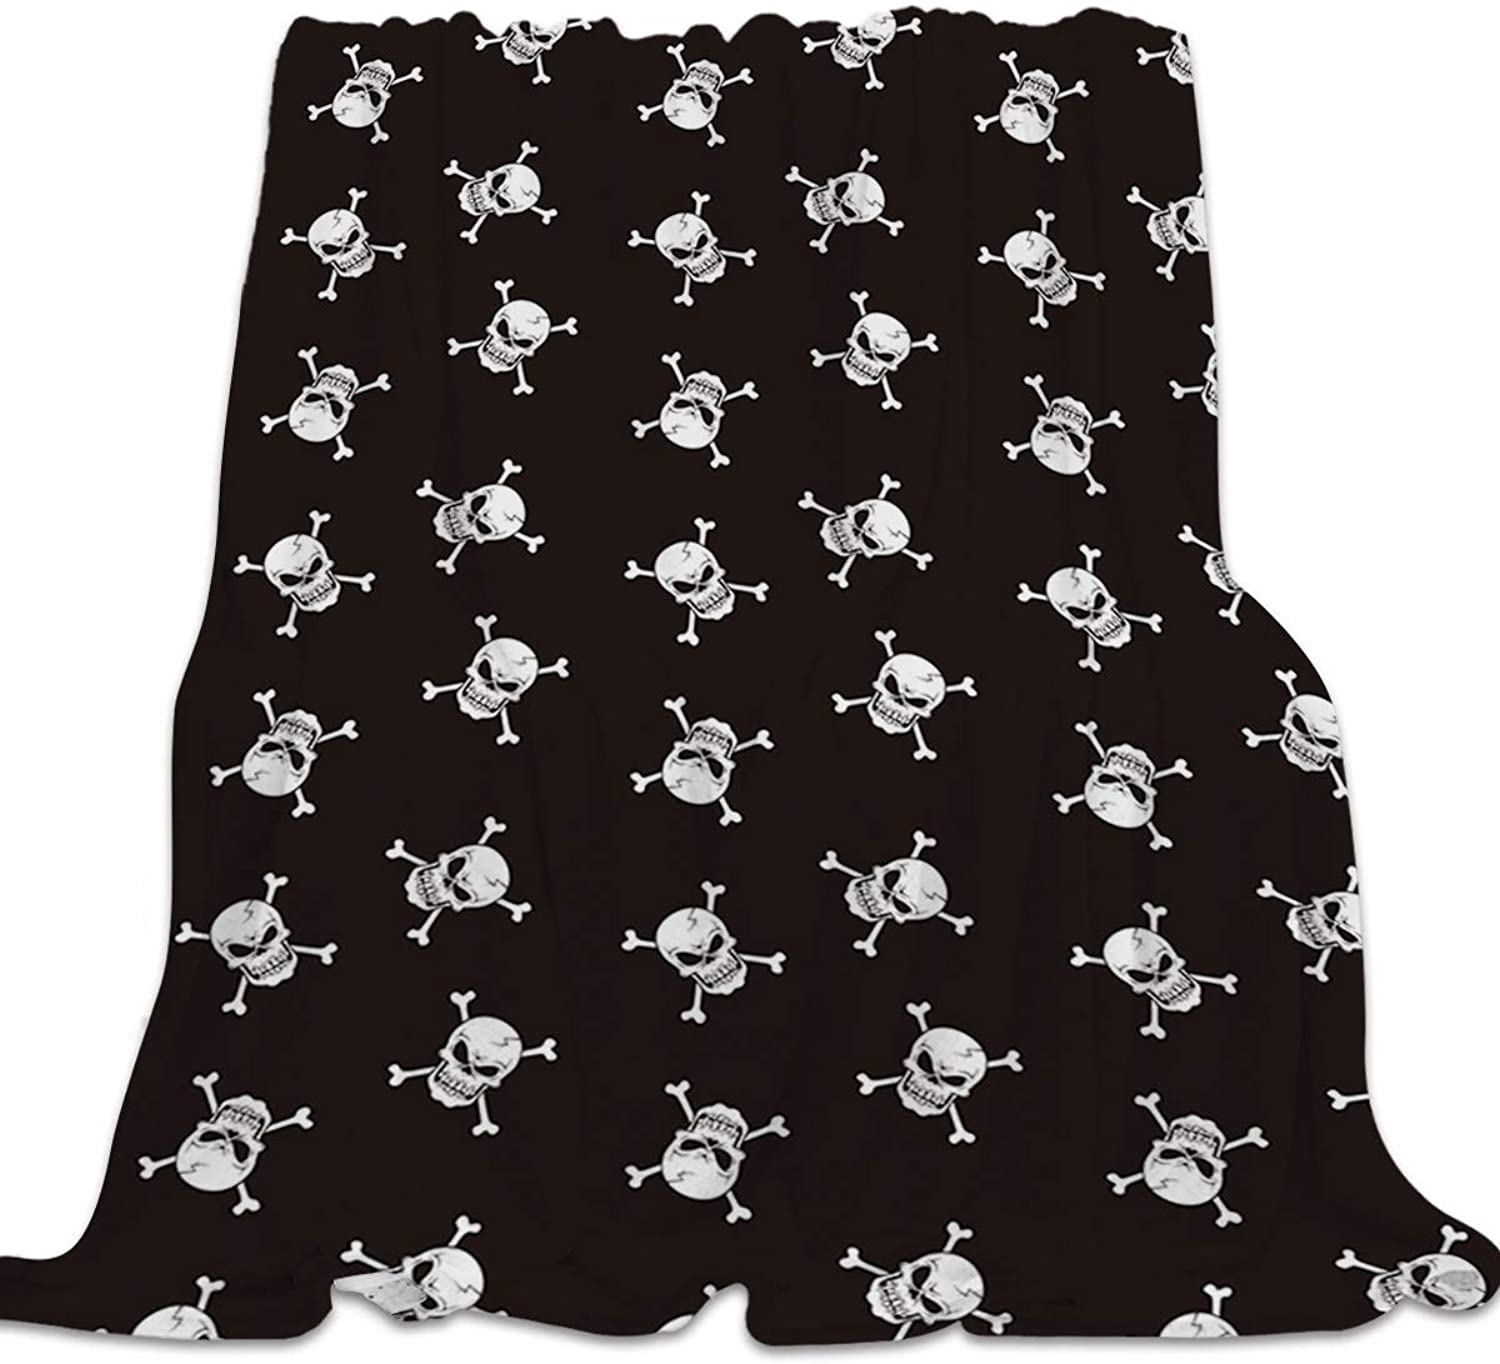 YEHO Art Gallery Flannel Fleece Bed Blanket Super Soft Cozy Throw-Blankets for Kids Girls Boys,Lightweight Blankets for Bed Sofa Couch Chair Day Nap,Black and White Skull Head Pattern,39x49inch